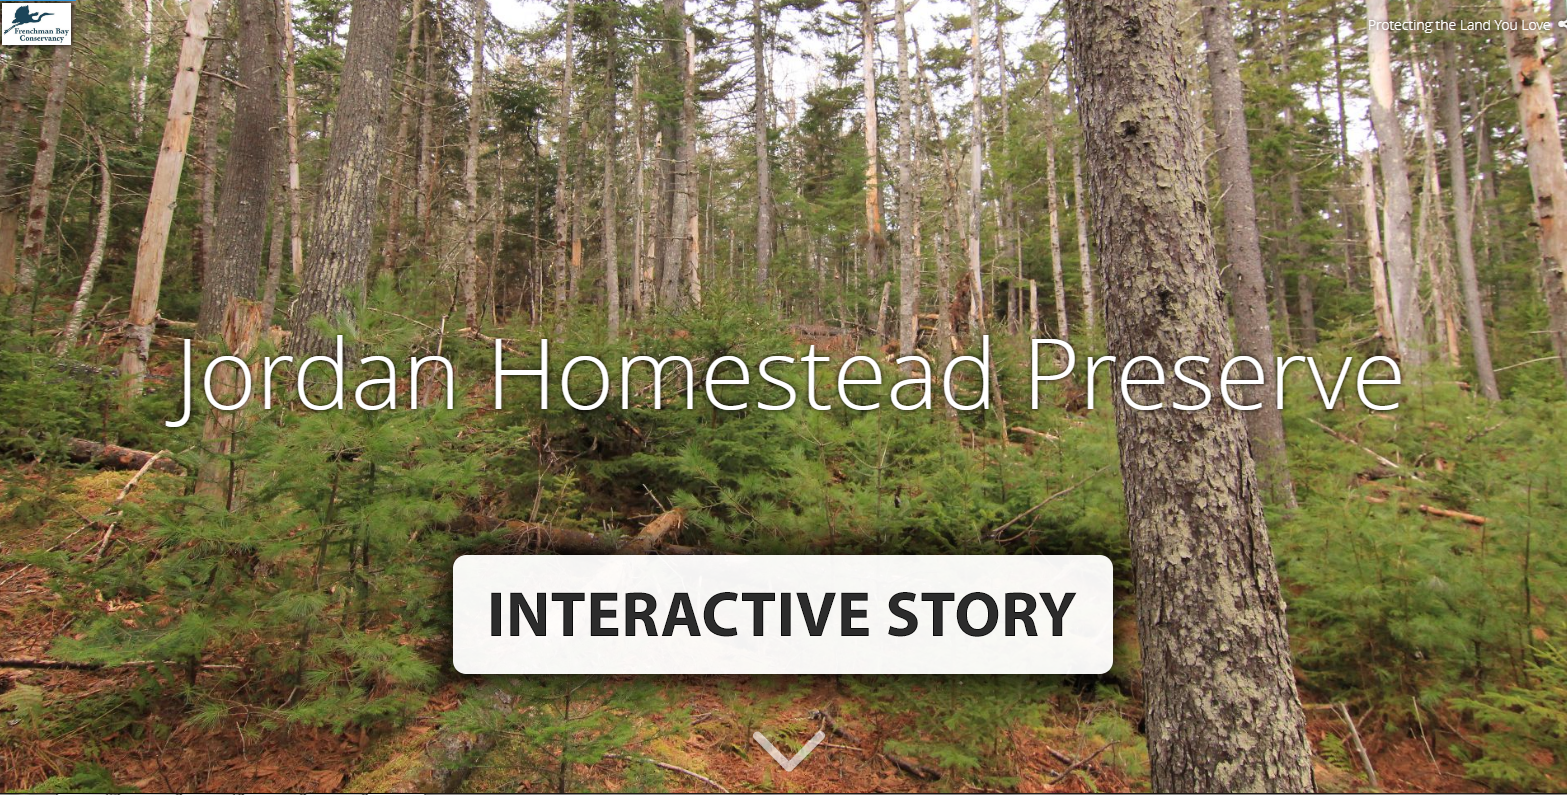 Jordan Homestead Preserve Story Map